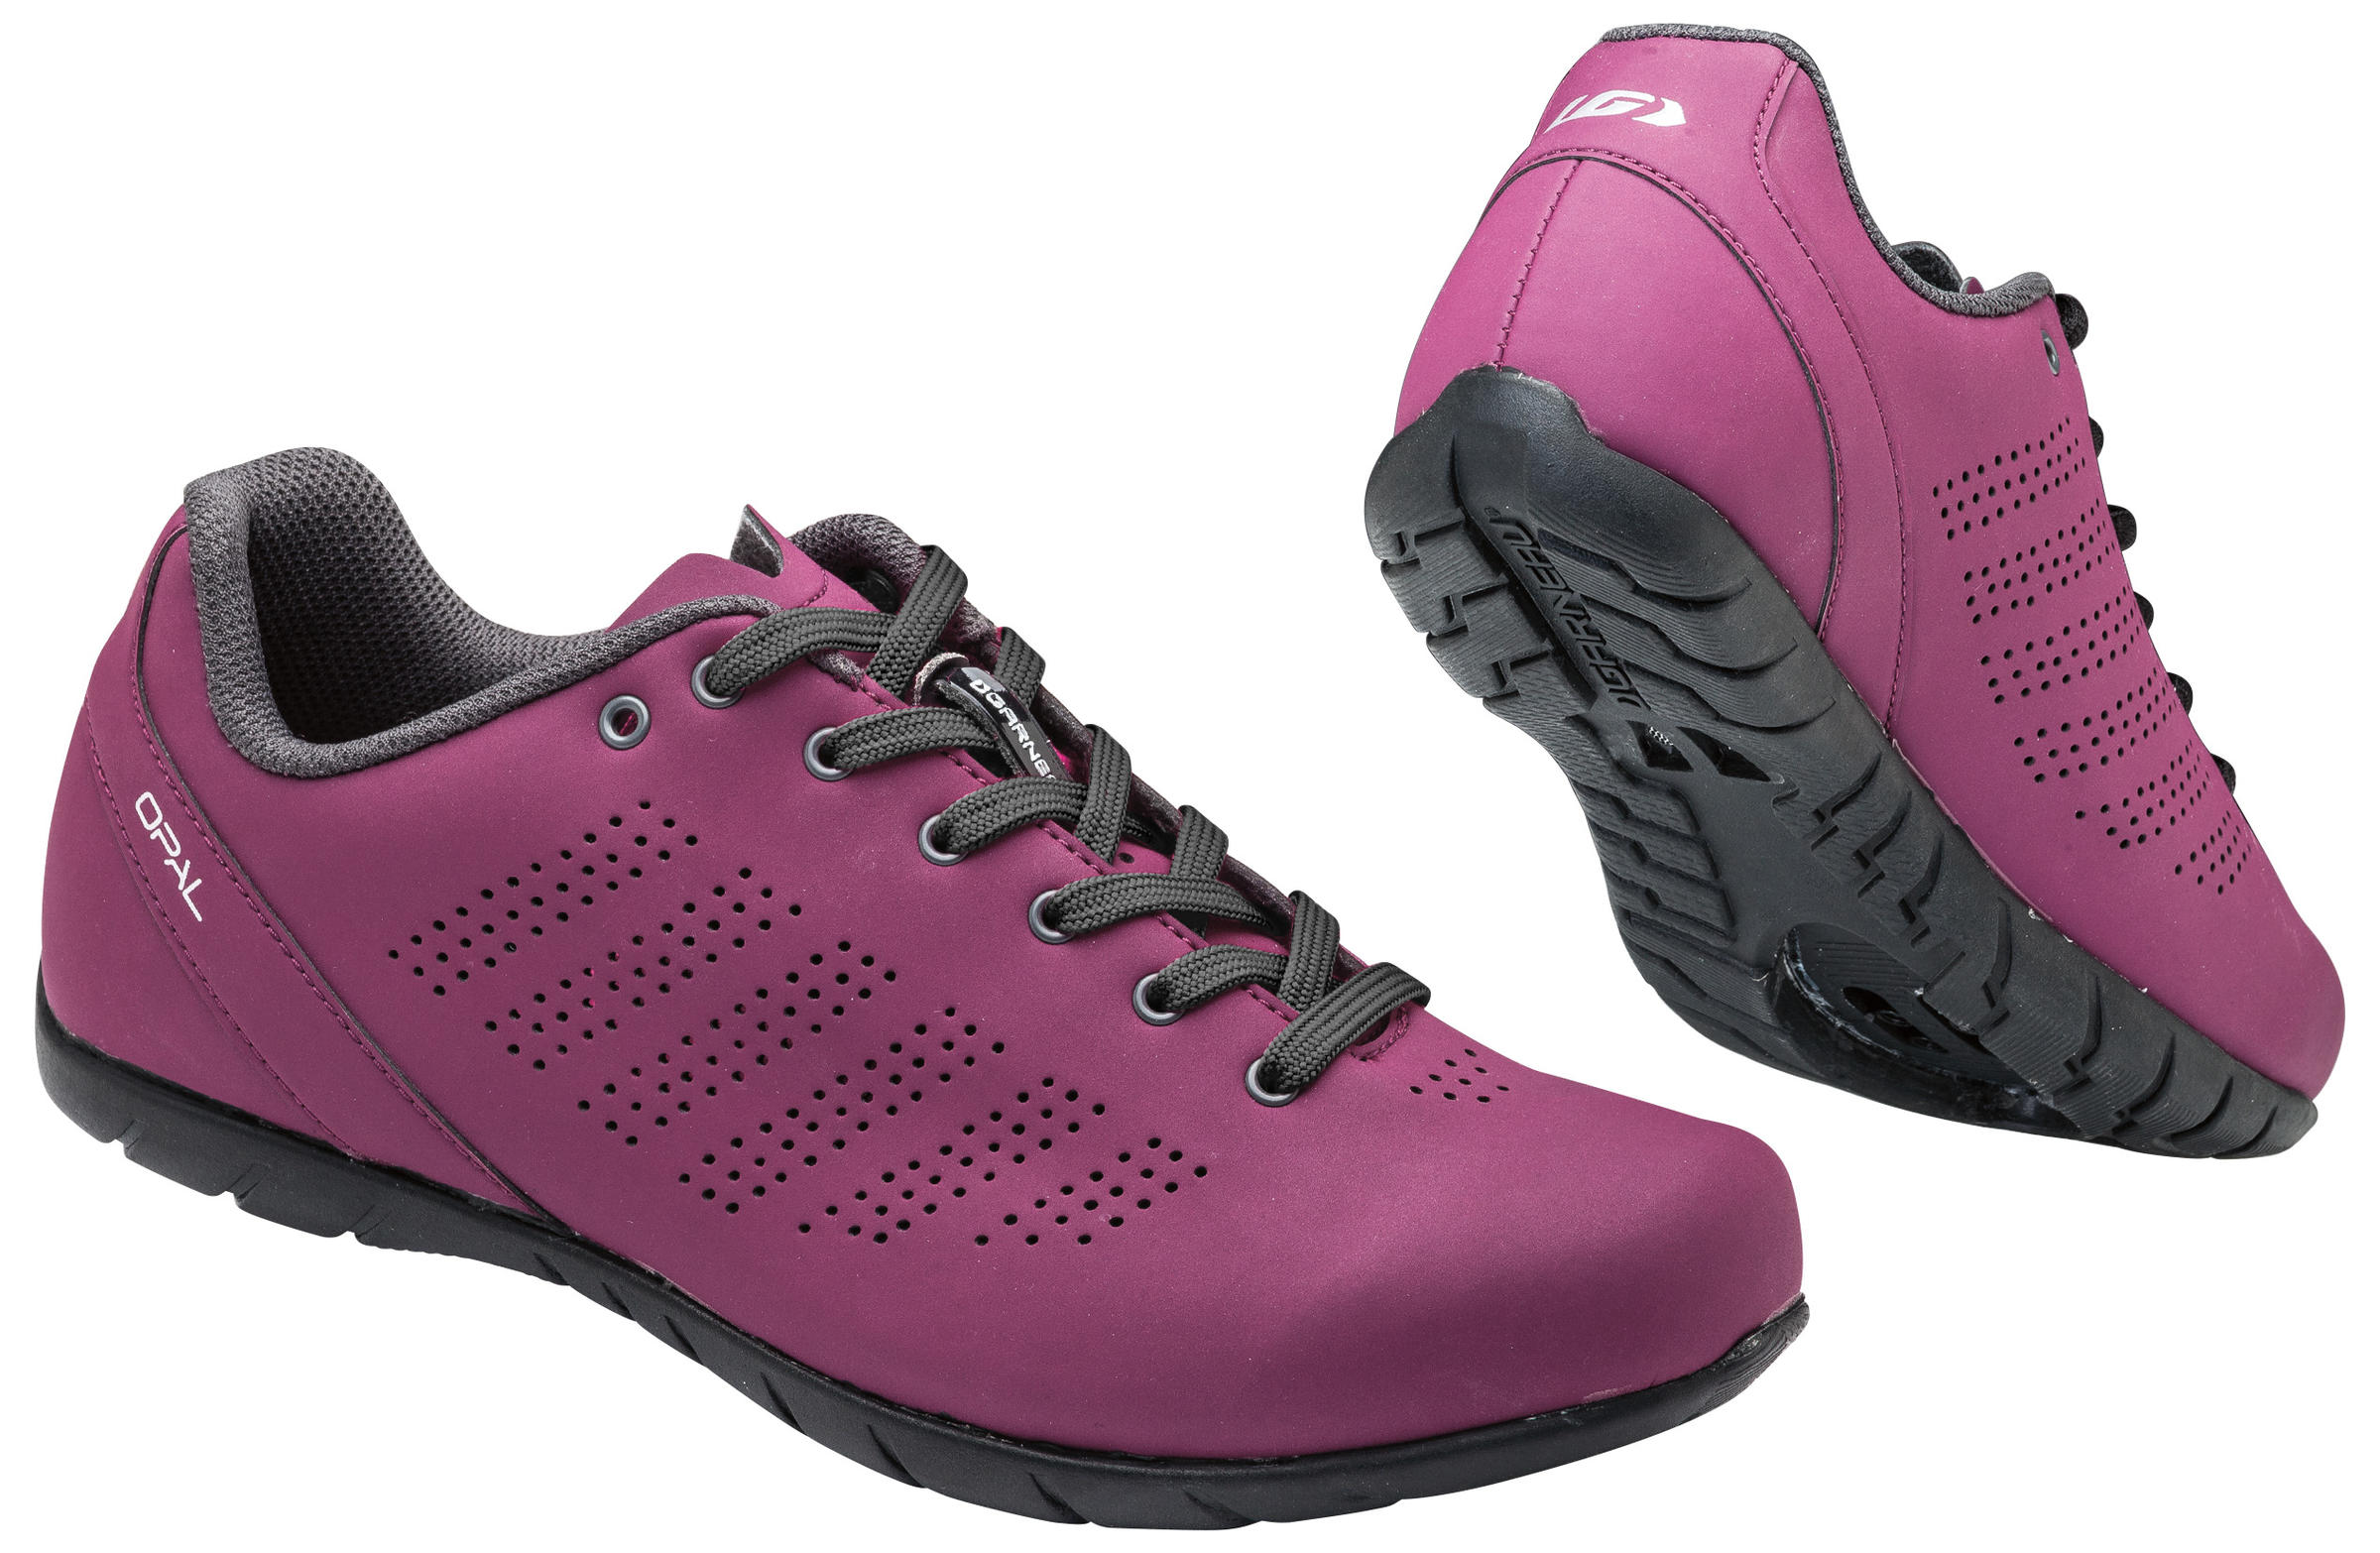 ladies cycling shoes Shop Clothing & Shoes Online